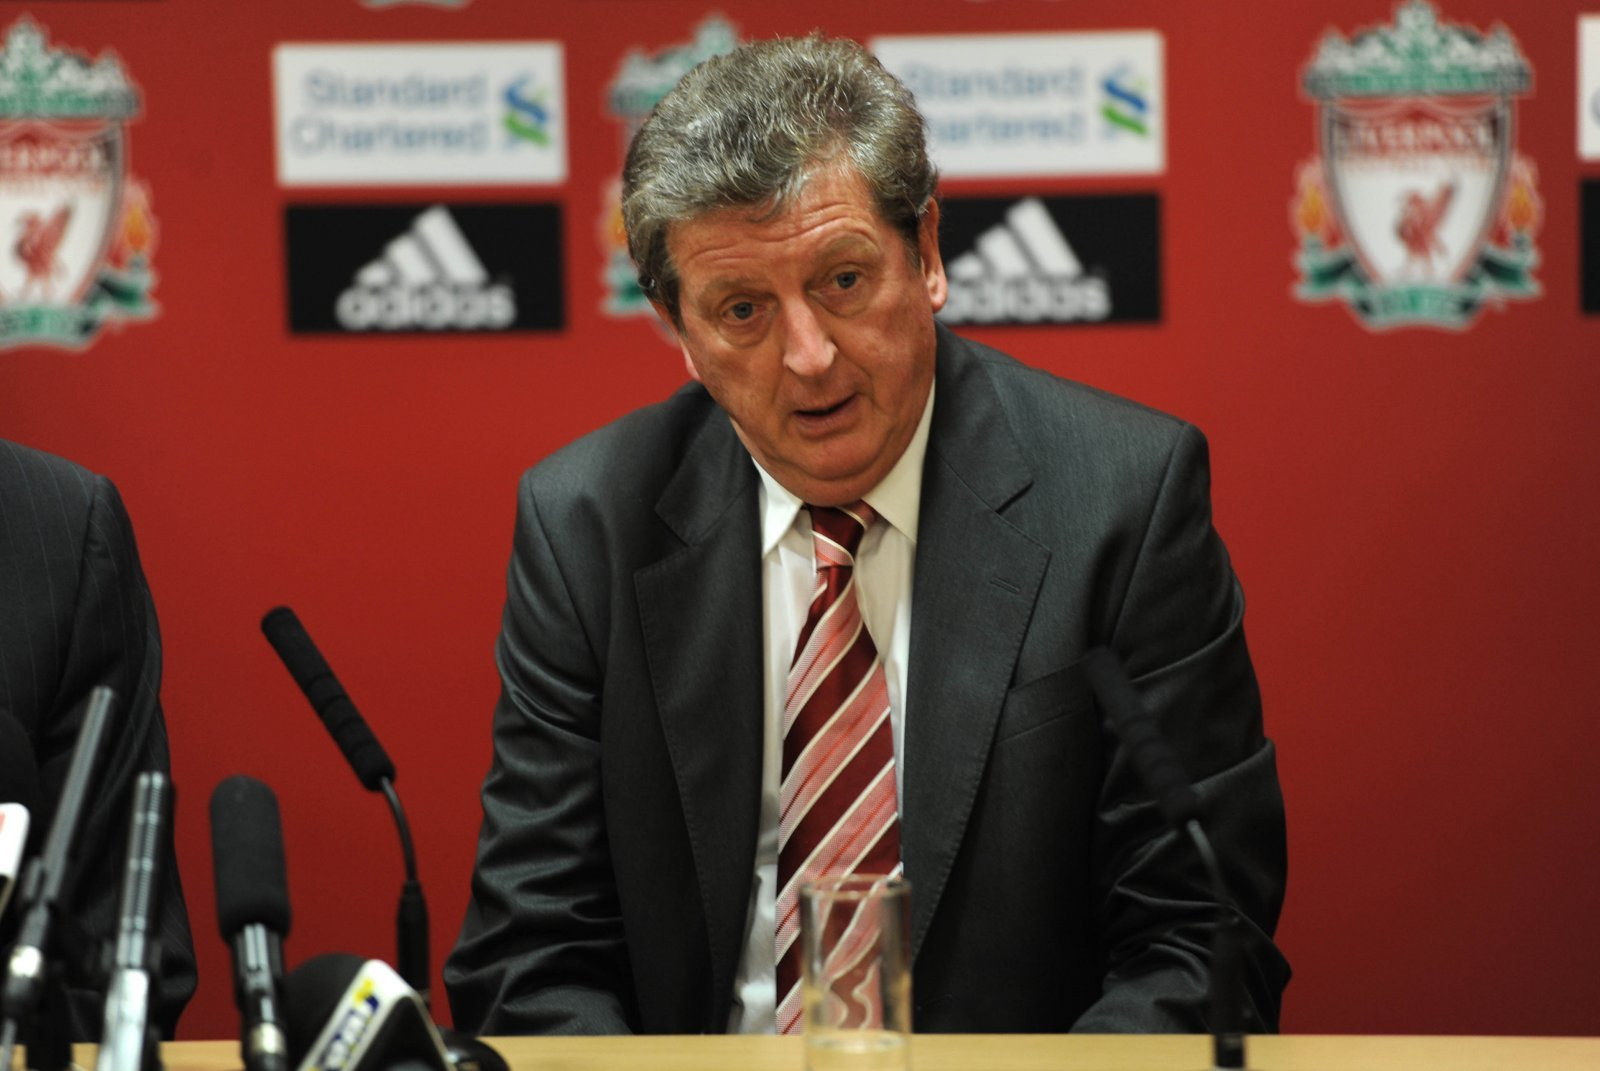 Liverpool: Fans reflect on how far the team have come since the Roy Hodgson era